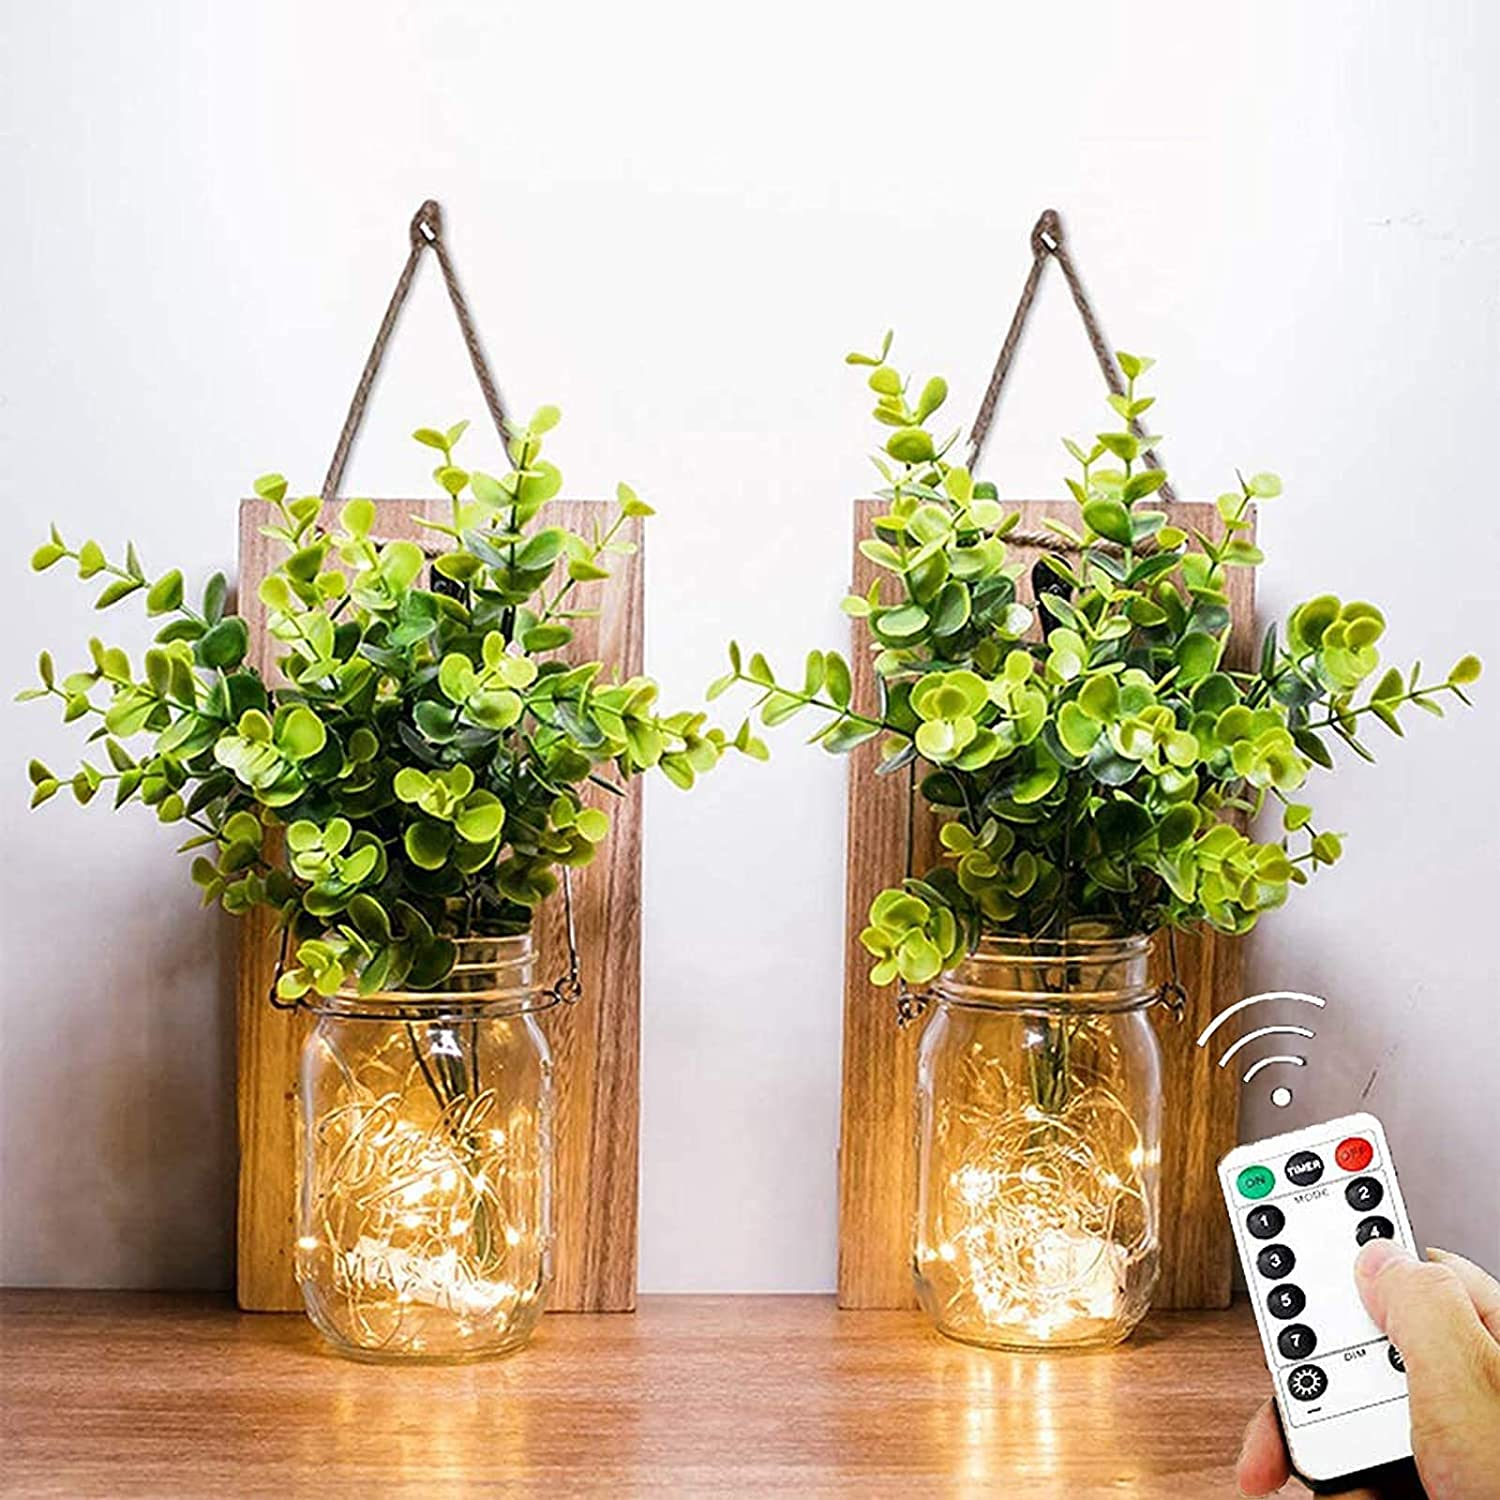 Mason Jar Lights, (Remote Control) Sconces Rustic Wall Decoration - Hanging lamp LED Fairy Lights with Green Plant for Interior, Home, Office, Kitchen, Bathroom Decor Living (Warm Light)(2PCS)